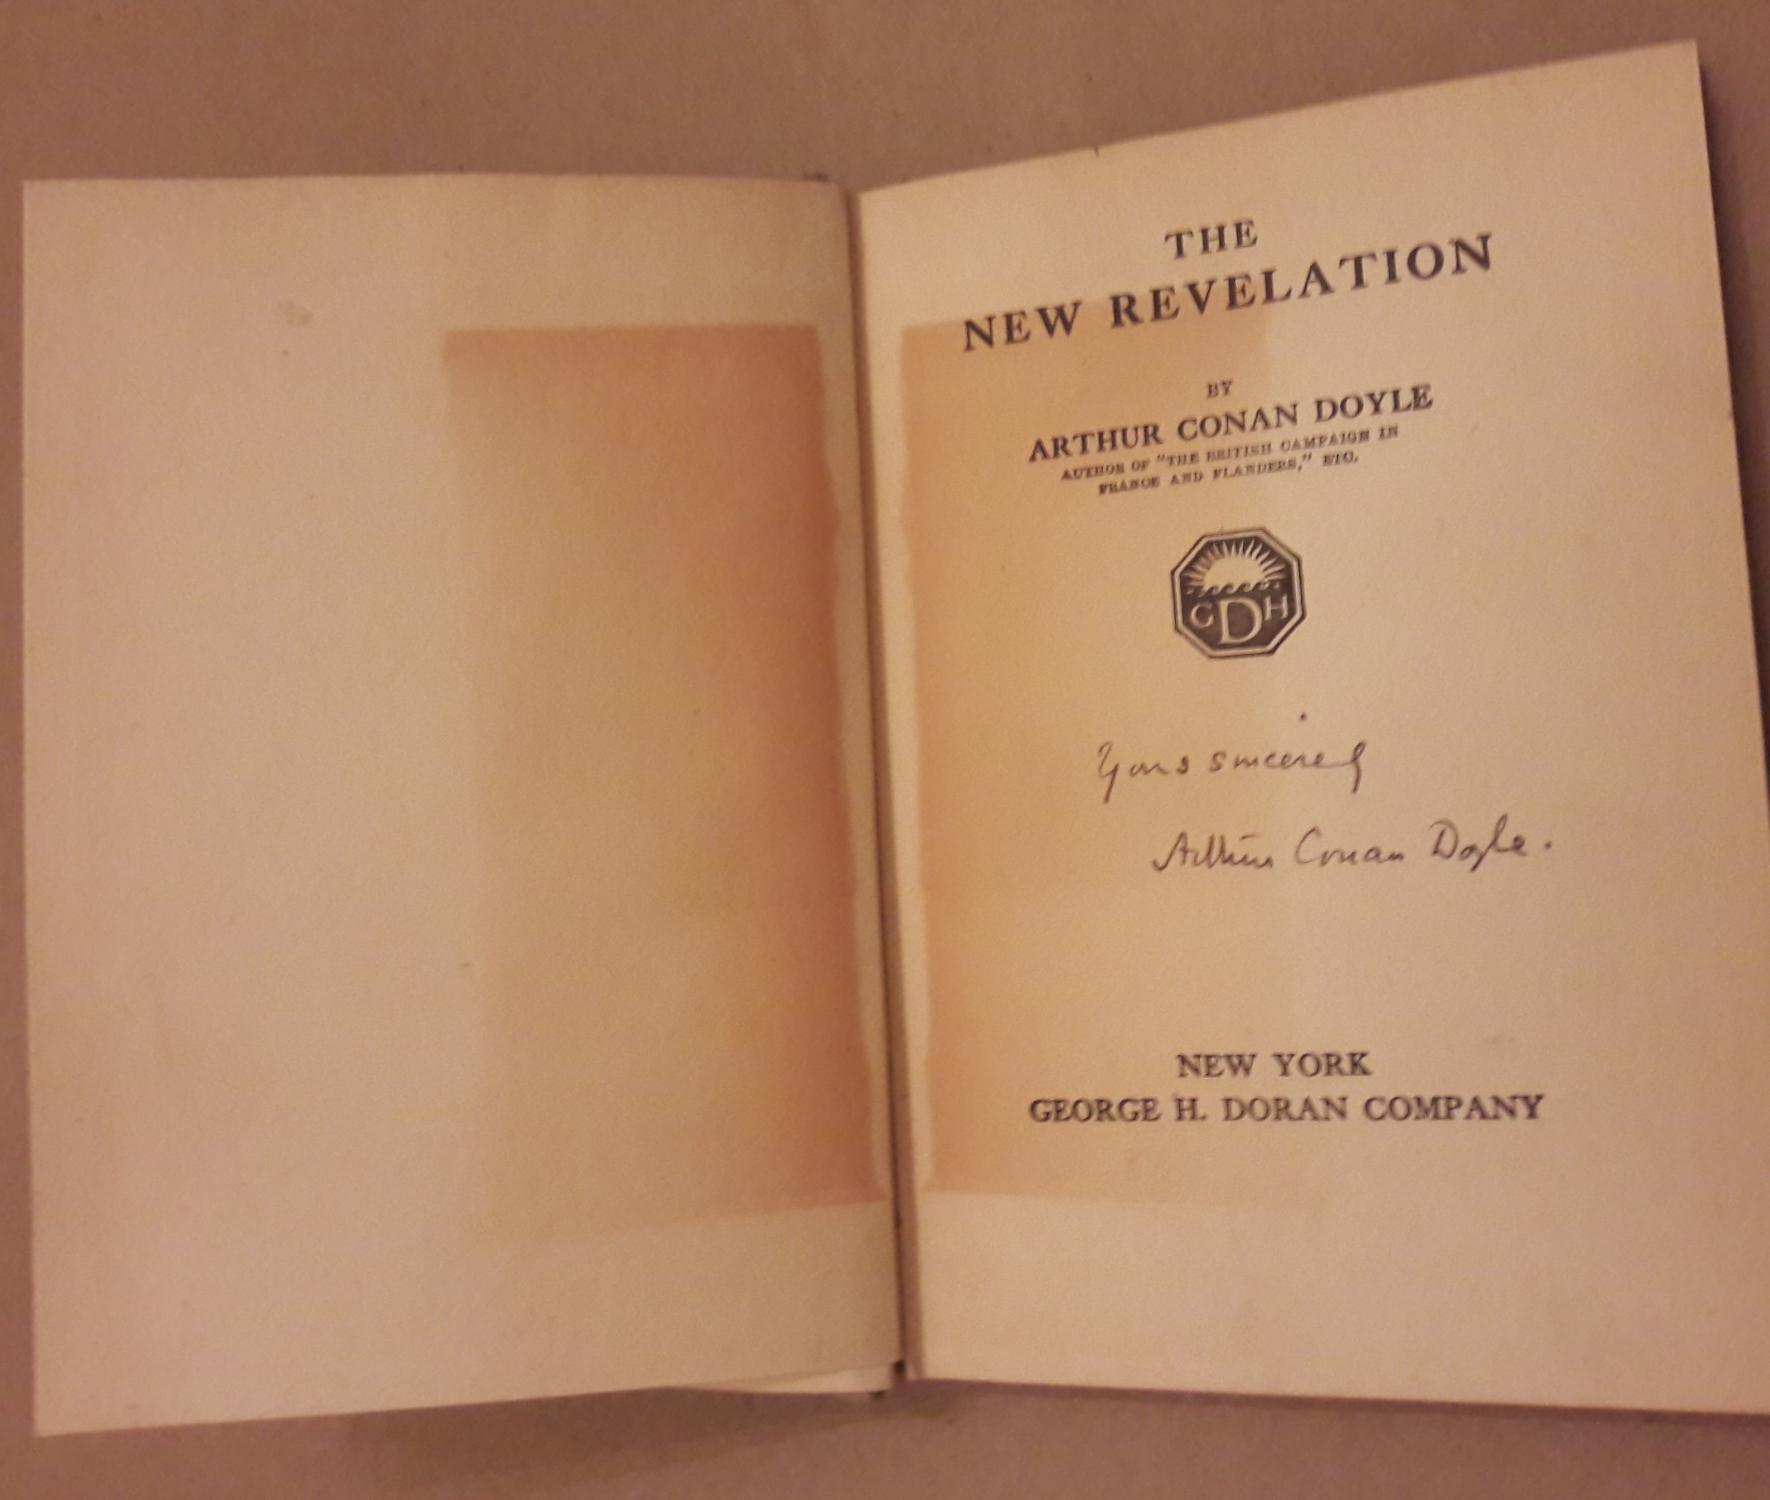 Vialibri rare books from 1918 page 1 doyle arthur conan sir 1859 1930 the new revelation inscribed by the author new york george h doran company 1918 first american malvernweather Image collections